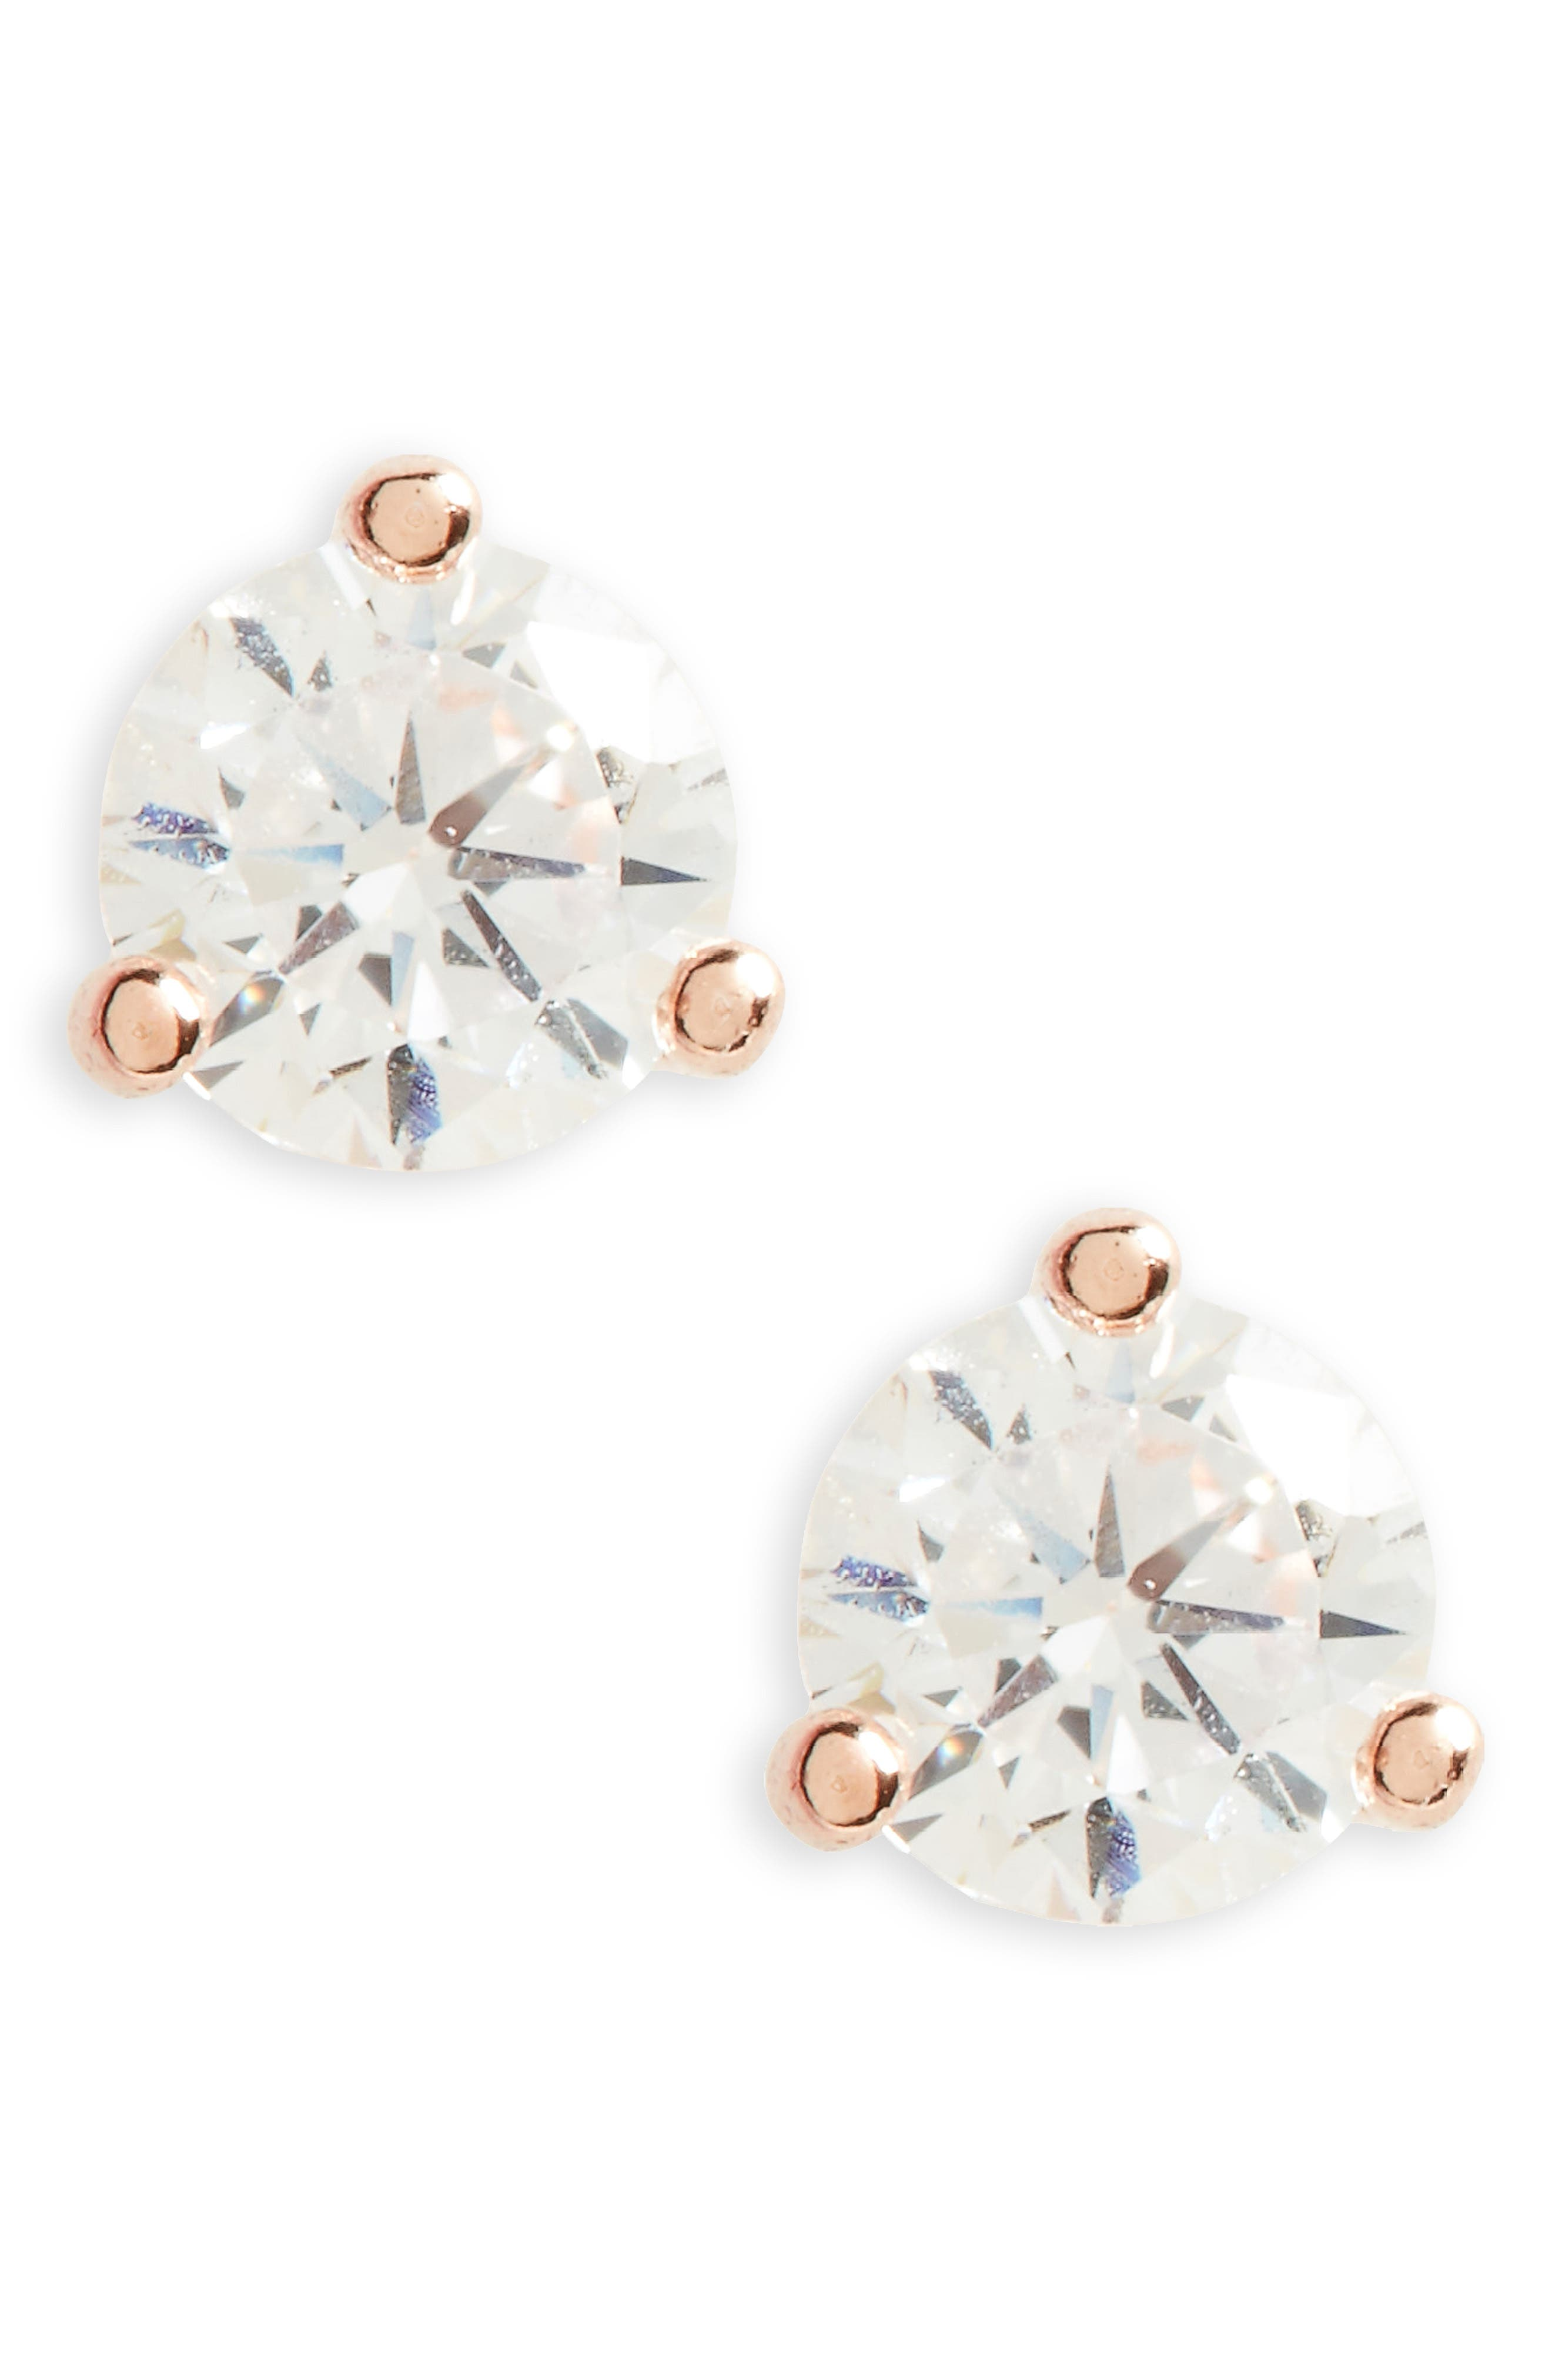 NORDSTROM 0.25ct tw Cubic Zirconia Stud Earrings, Main, color, CLEAR- ROSE GOLD